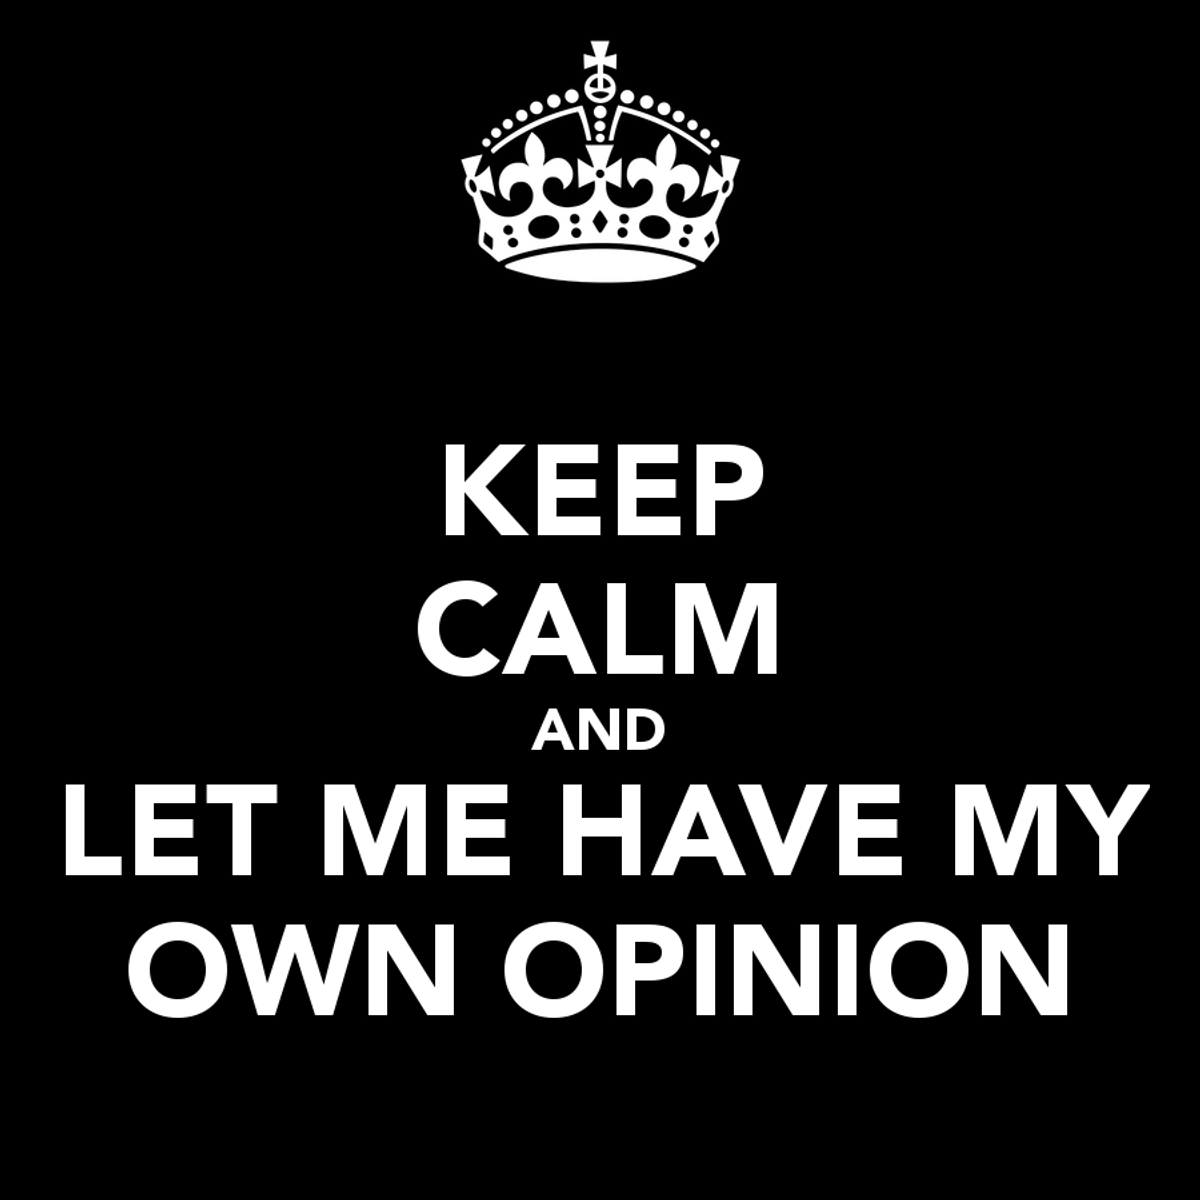 15 Ways To Respect A Person's Opinion